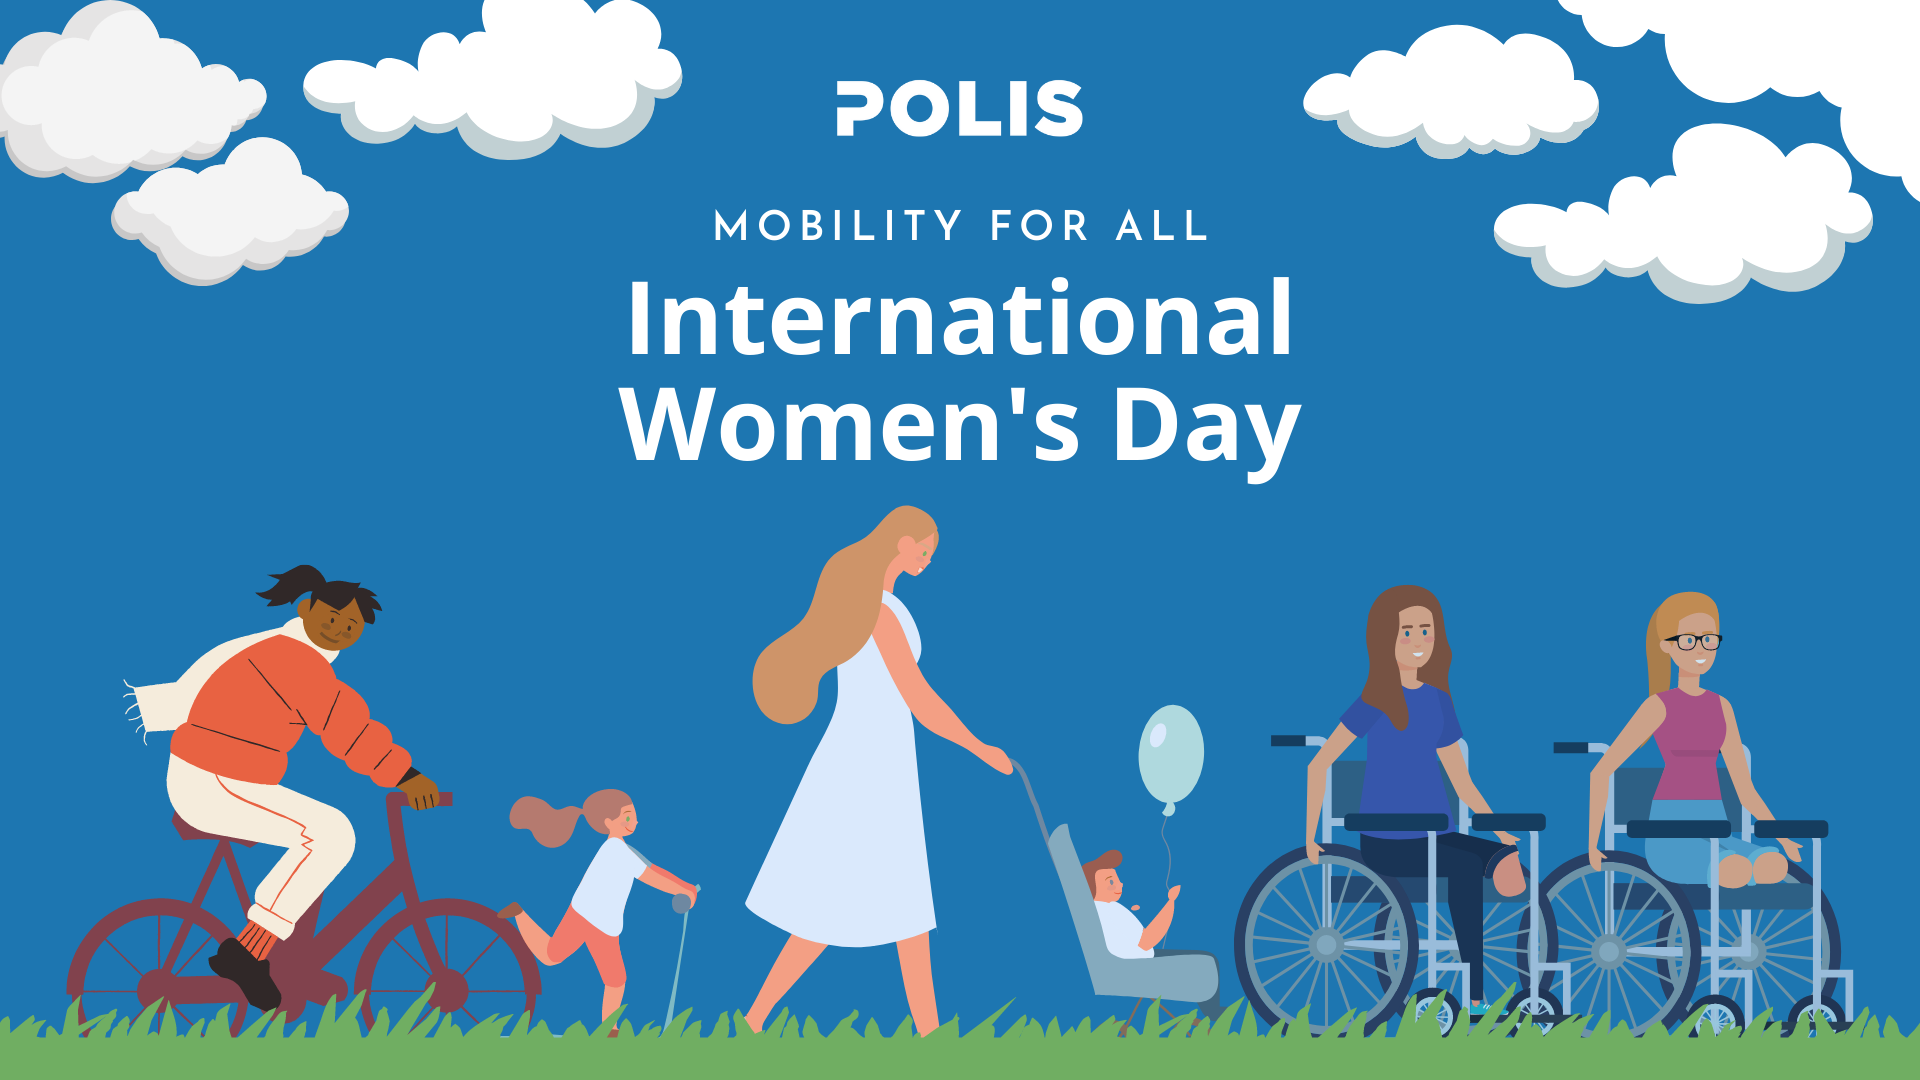 Under her own steam: Closing the mobility gender gap